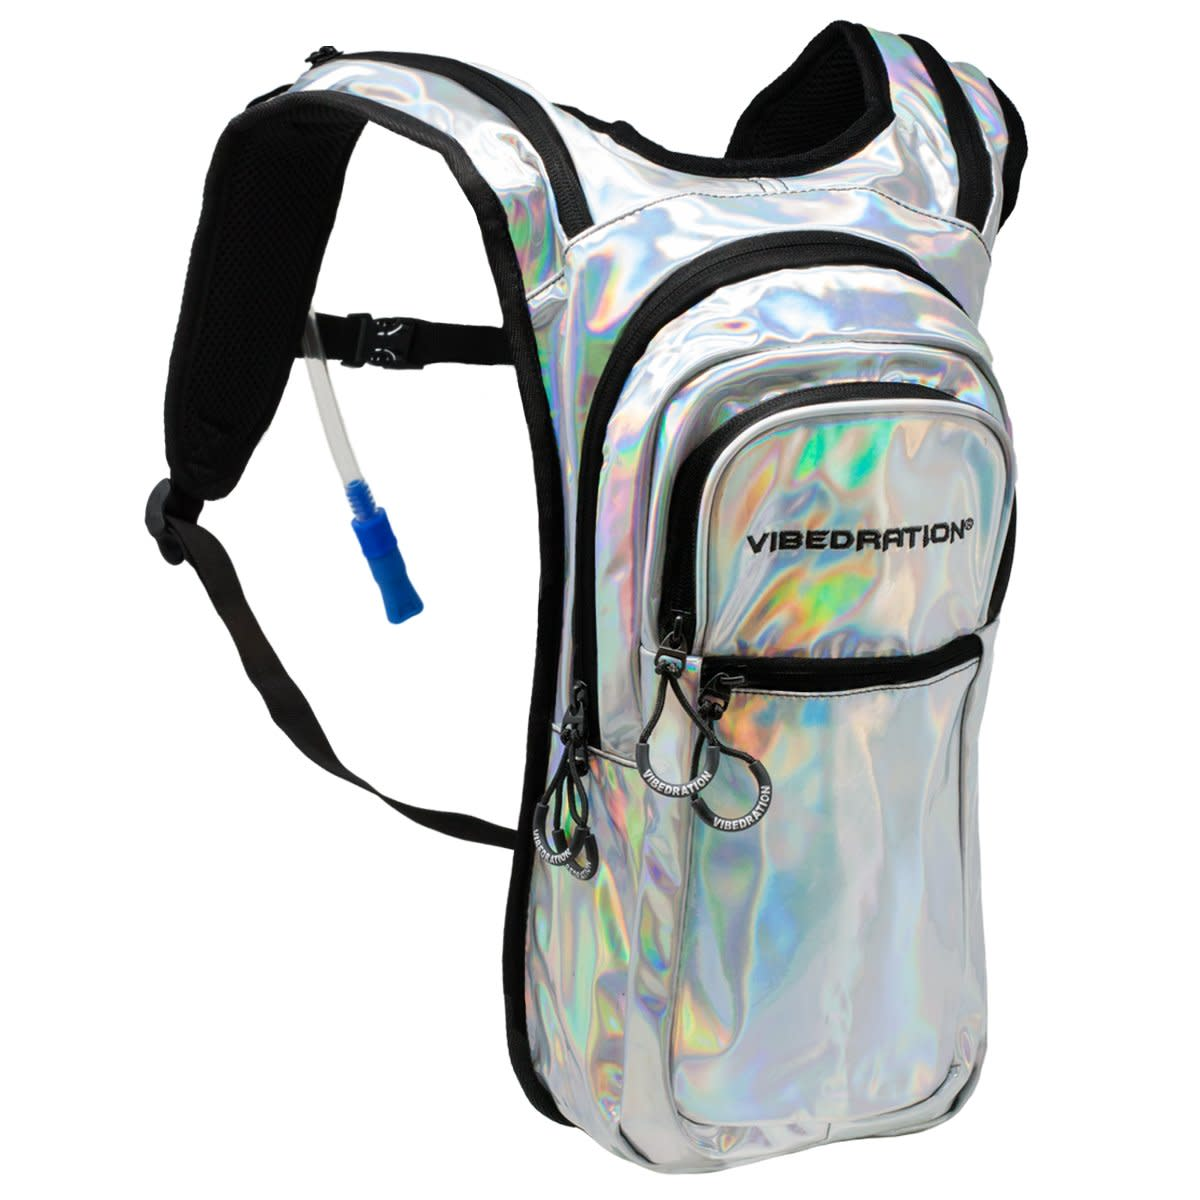 vibedration 2 L bag